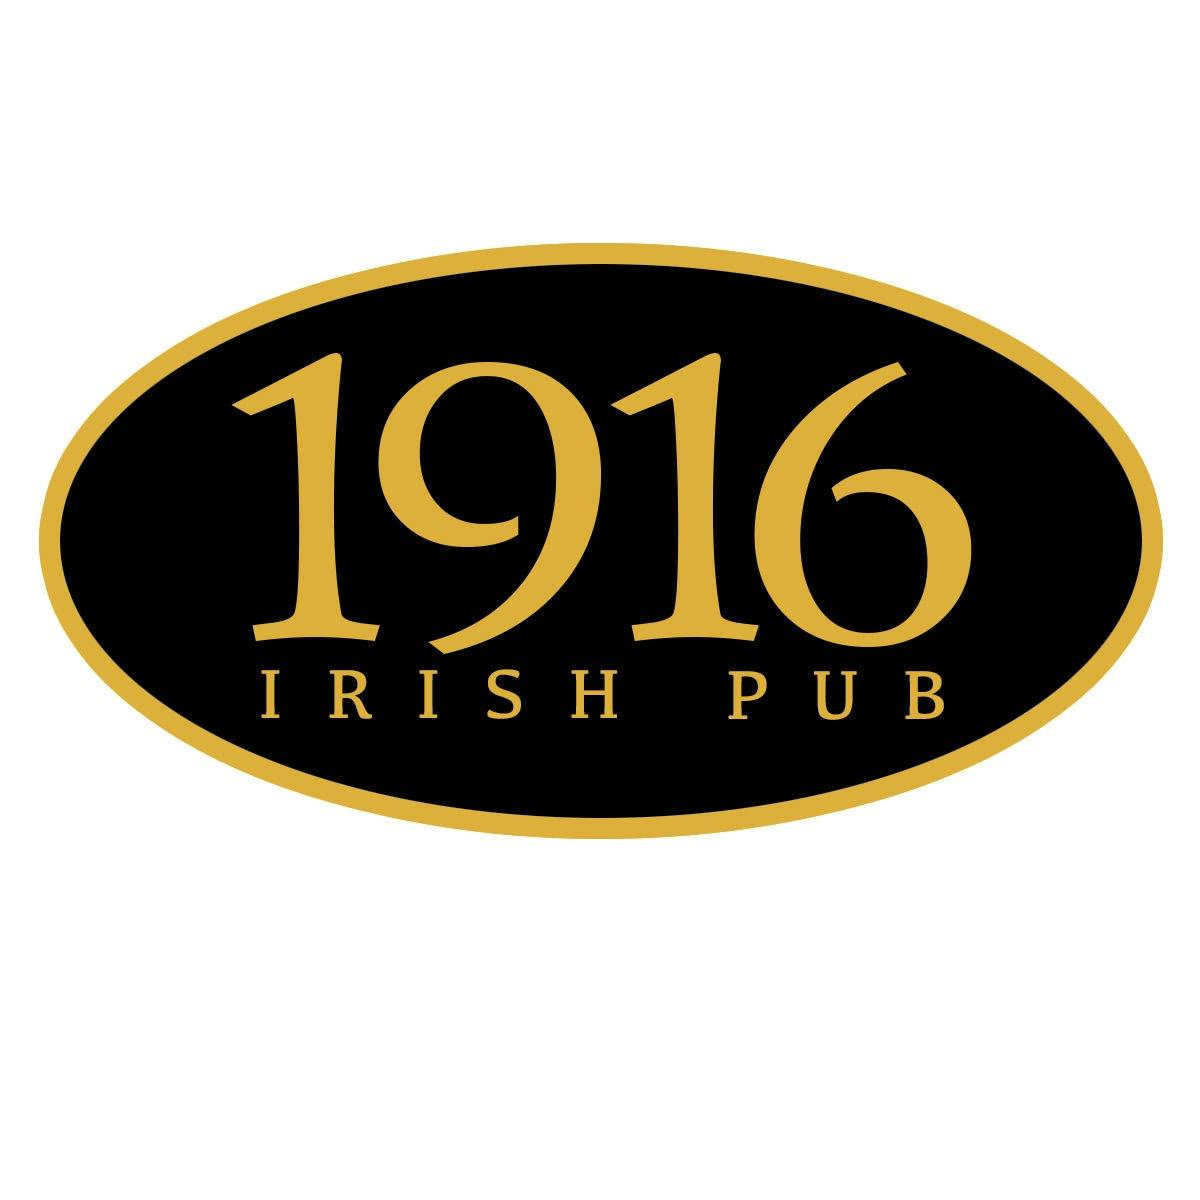 1916 Irish Pub